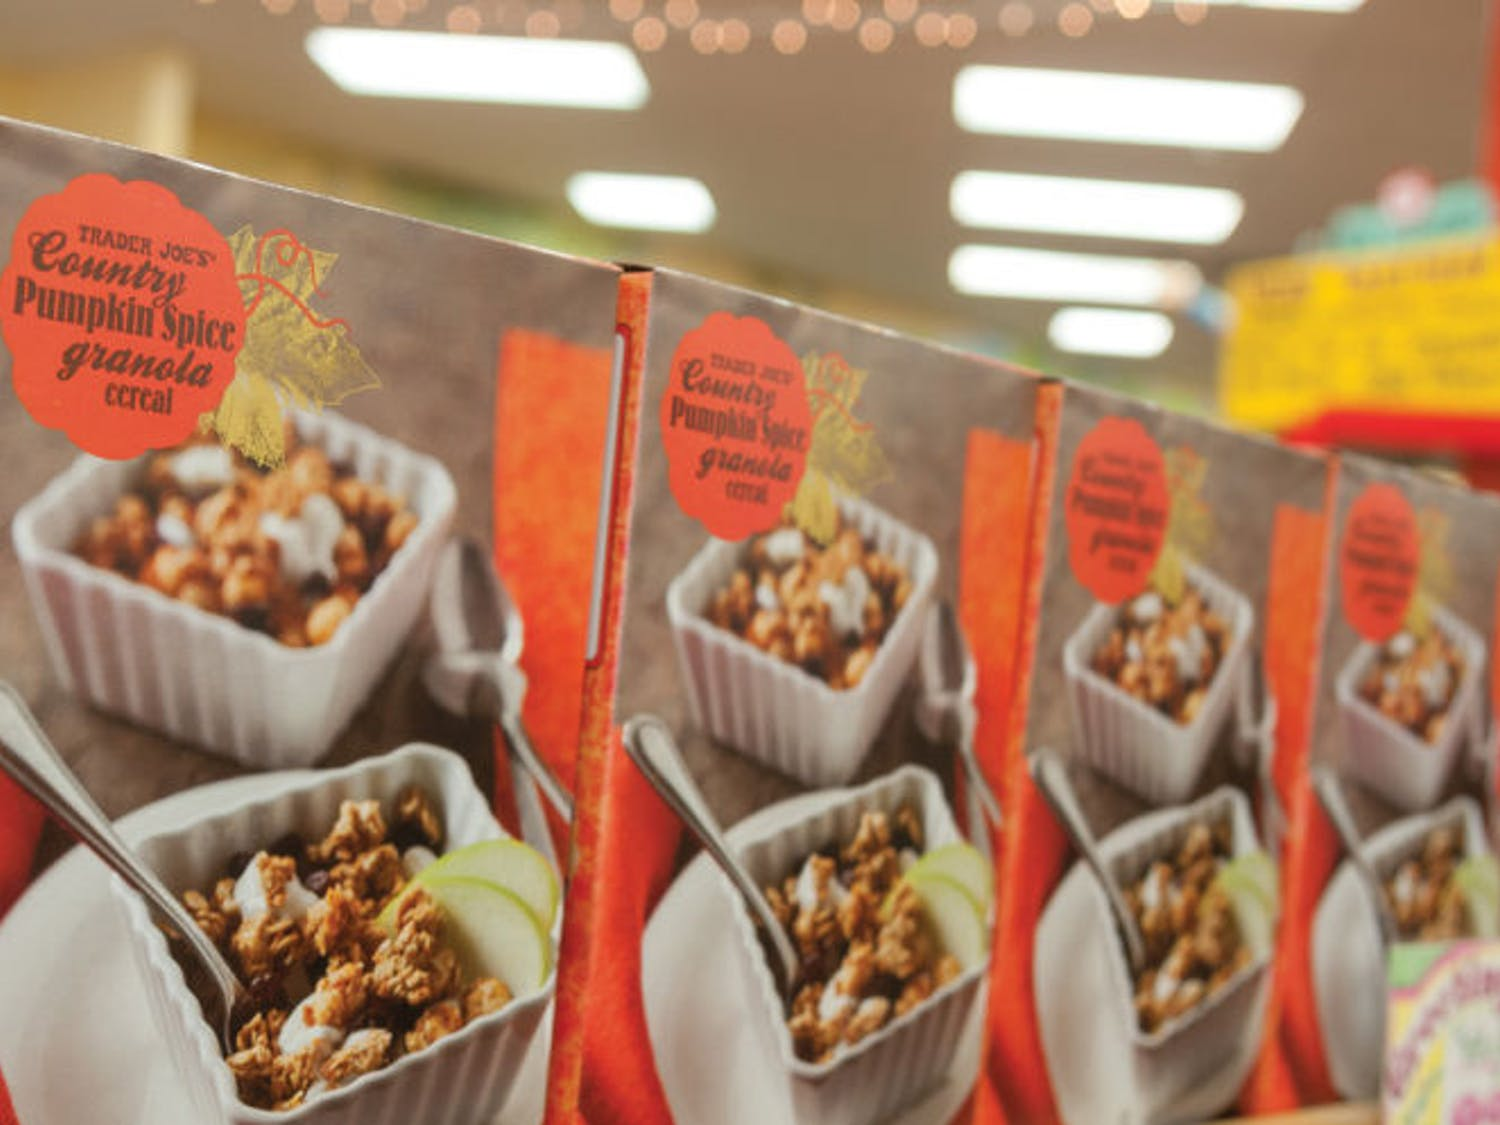 Pumpkin spice flavored groceries sit on the shelves of Trader Joe's in Butler Plaza on Monday. The store has embraced the season and is currently selling many pumpkin-flavored ingredients and food products.